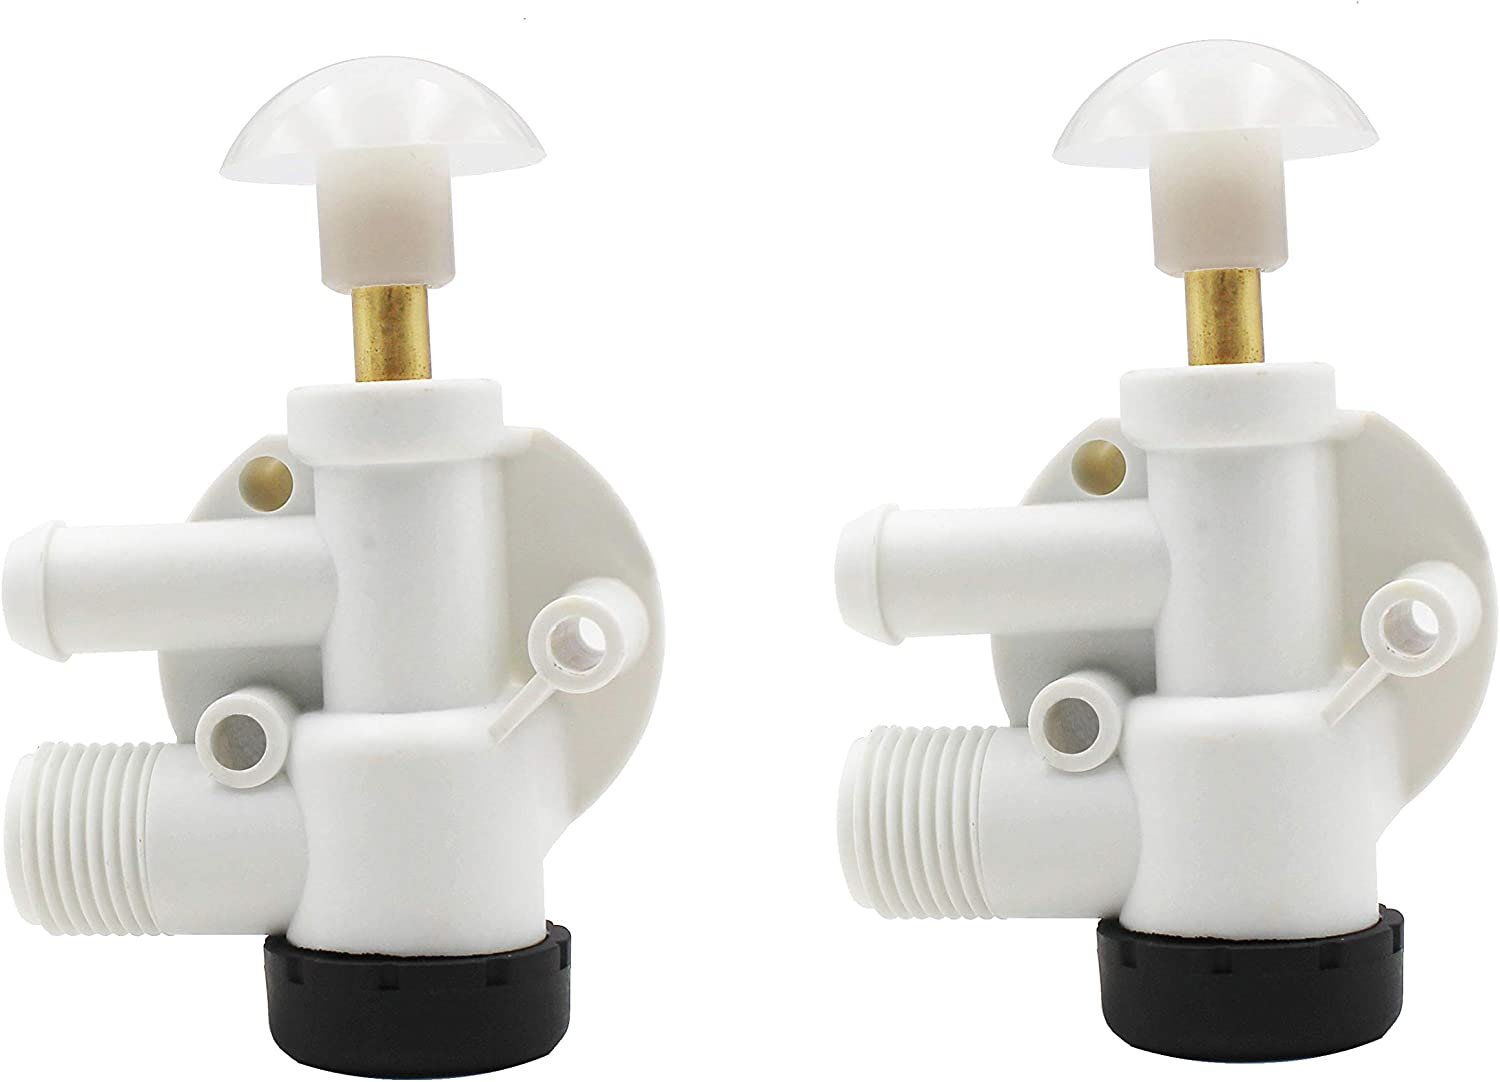 Natural Beech Lane RV Upgraded Toilet Water Valve Assembly 385314349 for Dometic Sealand EcoVac Vacuflush Pedal Flush Toilets